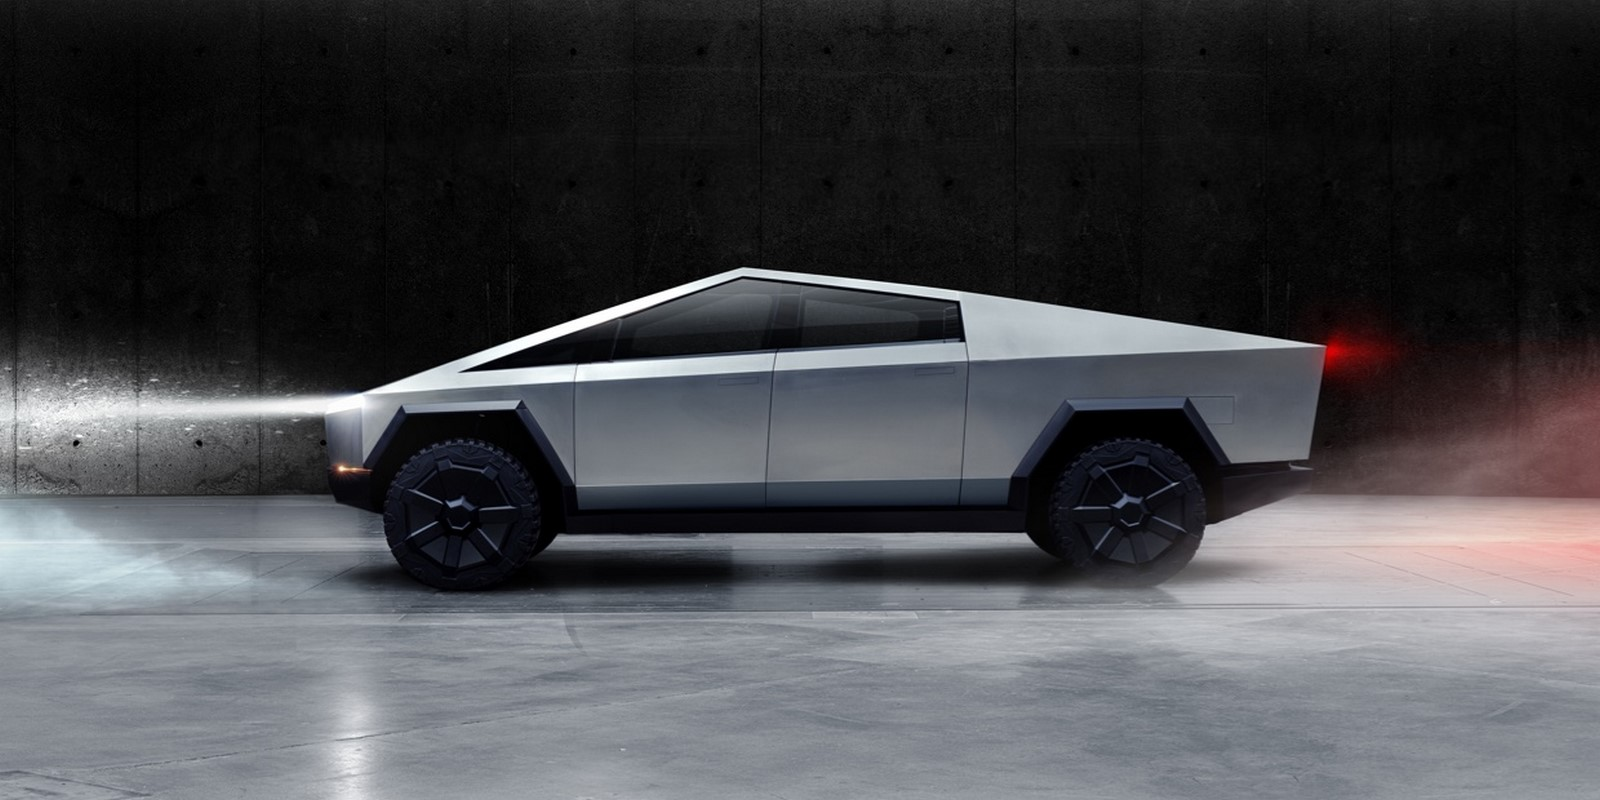 Top 10 Automobile Designs Inspired by Sci-Fi Movies and TV Sheet3